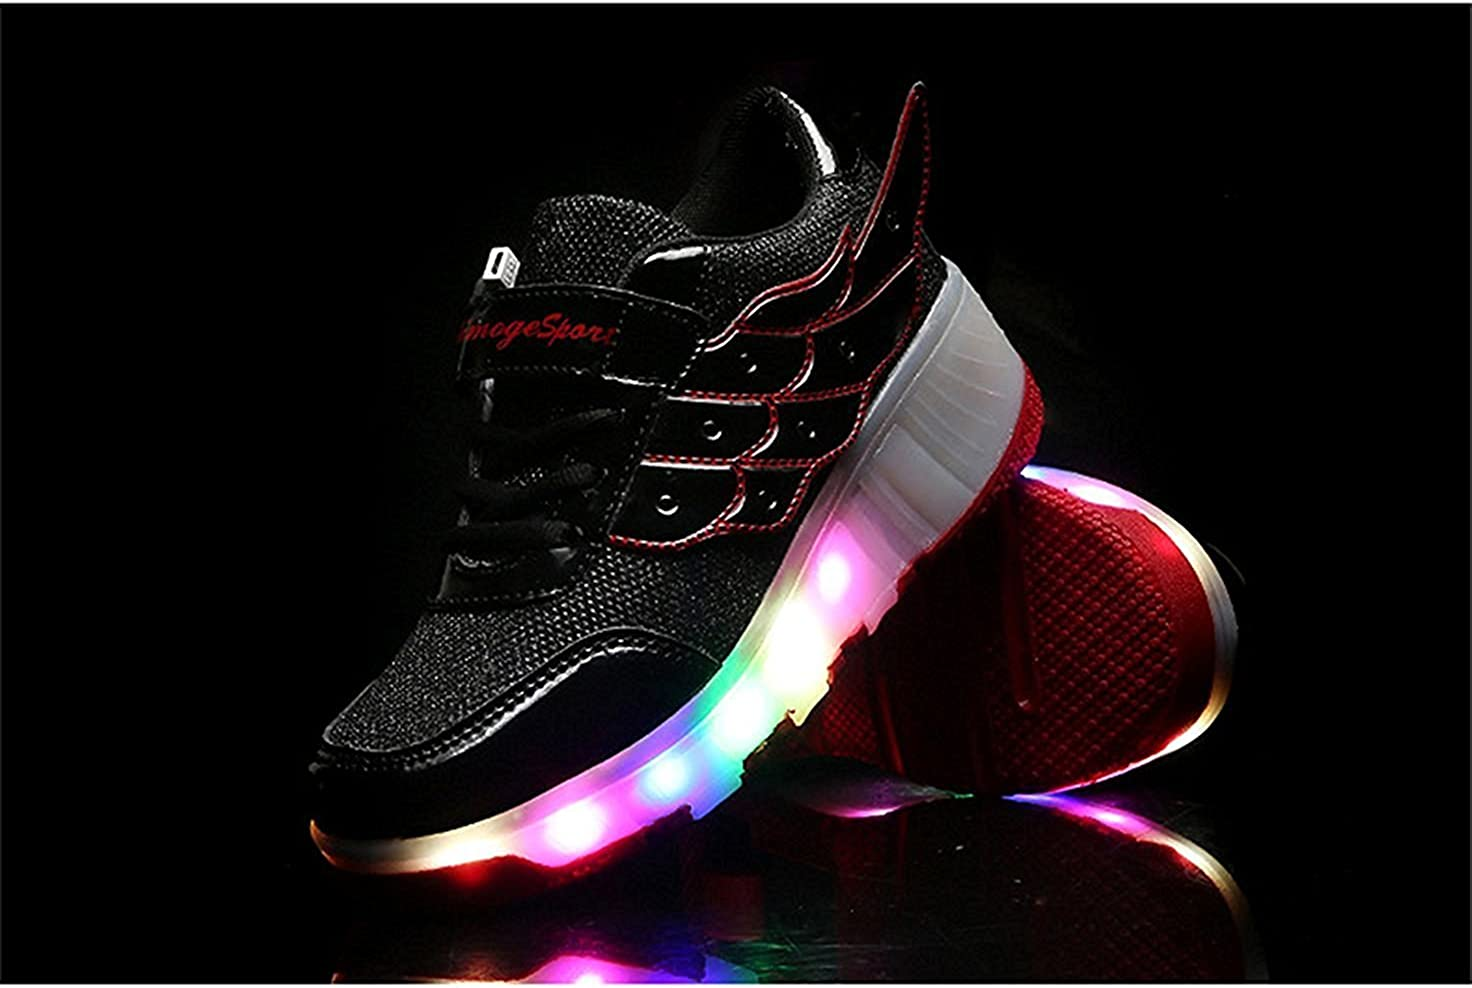 FG21ds21g Unisex Boys Girls LED Light UP Single Wheel Wings Shoes Roller Shoes Roller Sneakers Black-red 31 M EU//13 M US Little Kid